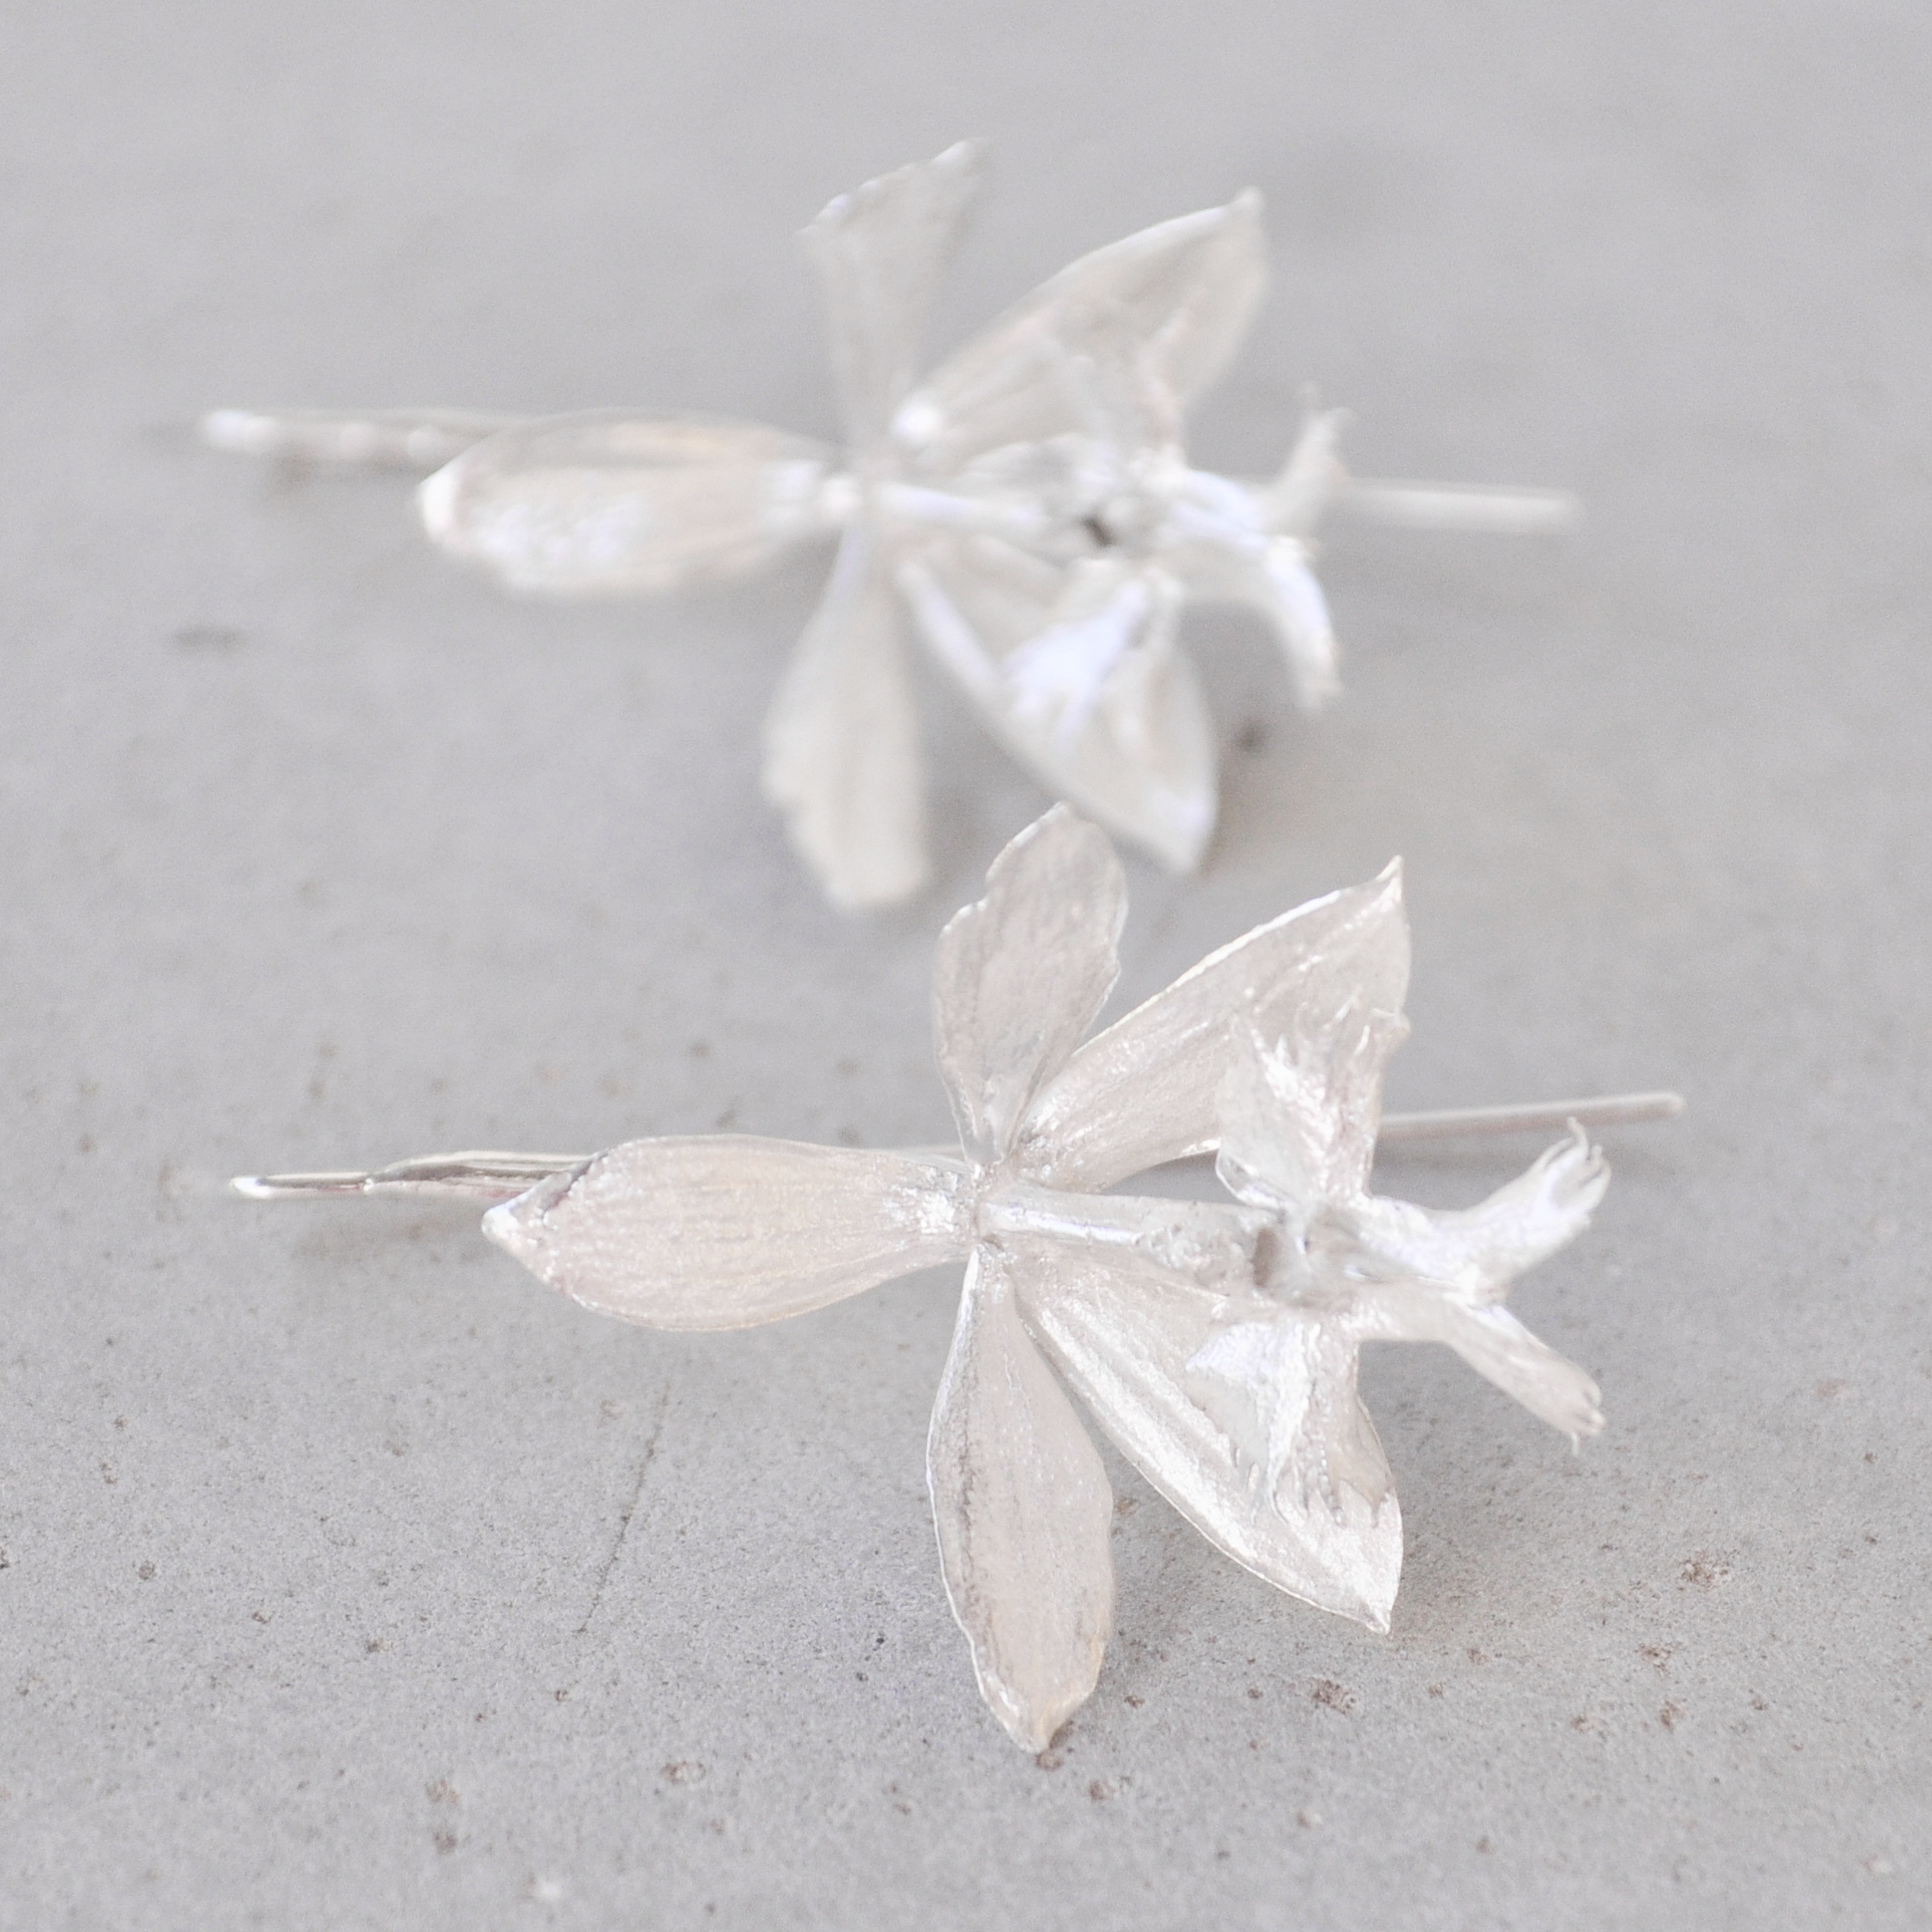 This striking pair of earrings was made from sterling silver castings of Epidendrum orchid flowers. Every set is unique as you can only get a single casting from a flower seeing that the mold is destroyed during the casting process. Our orchid earrings are seasonal since the orchid plant only flowers during specific times of the year.